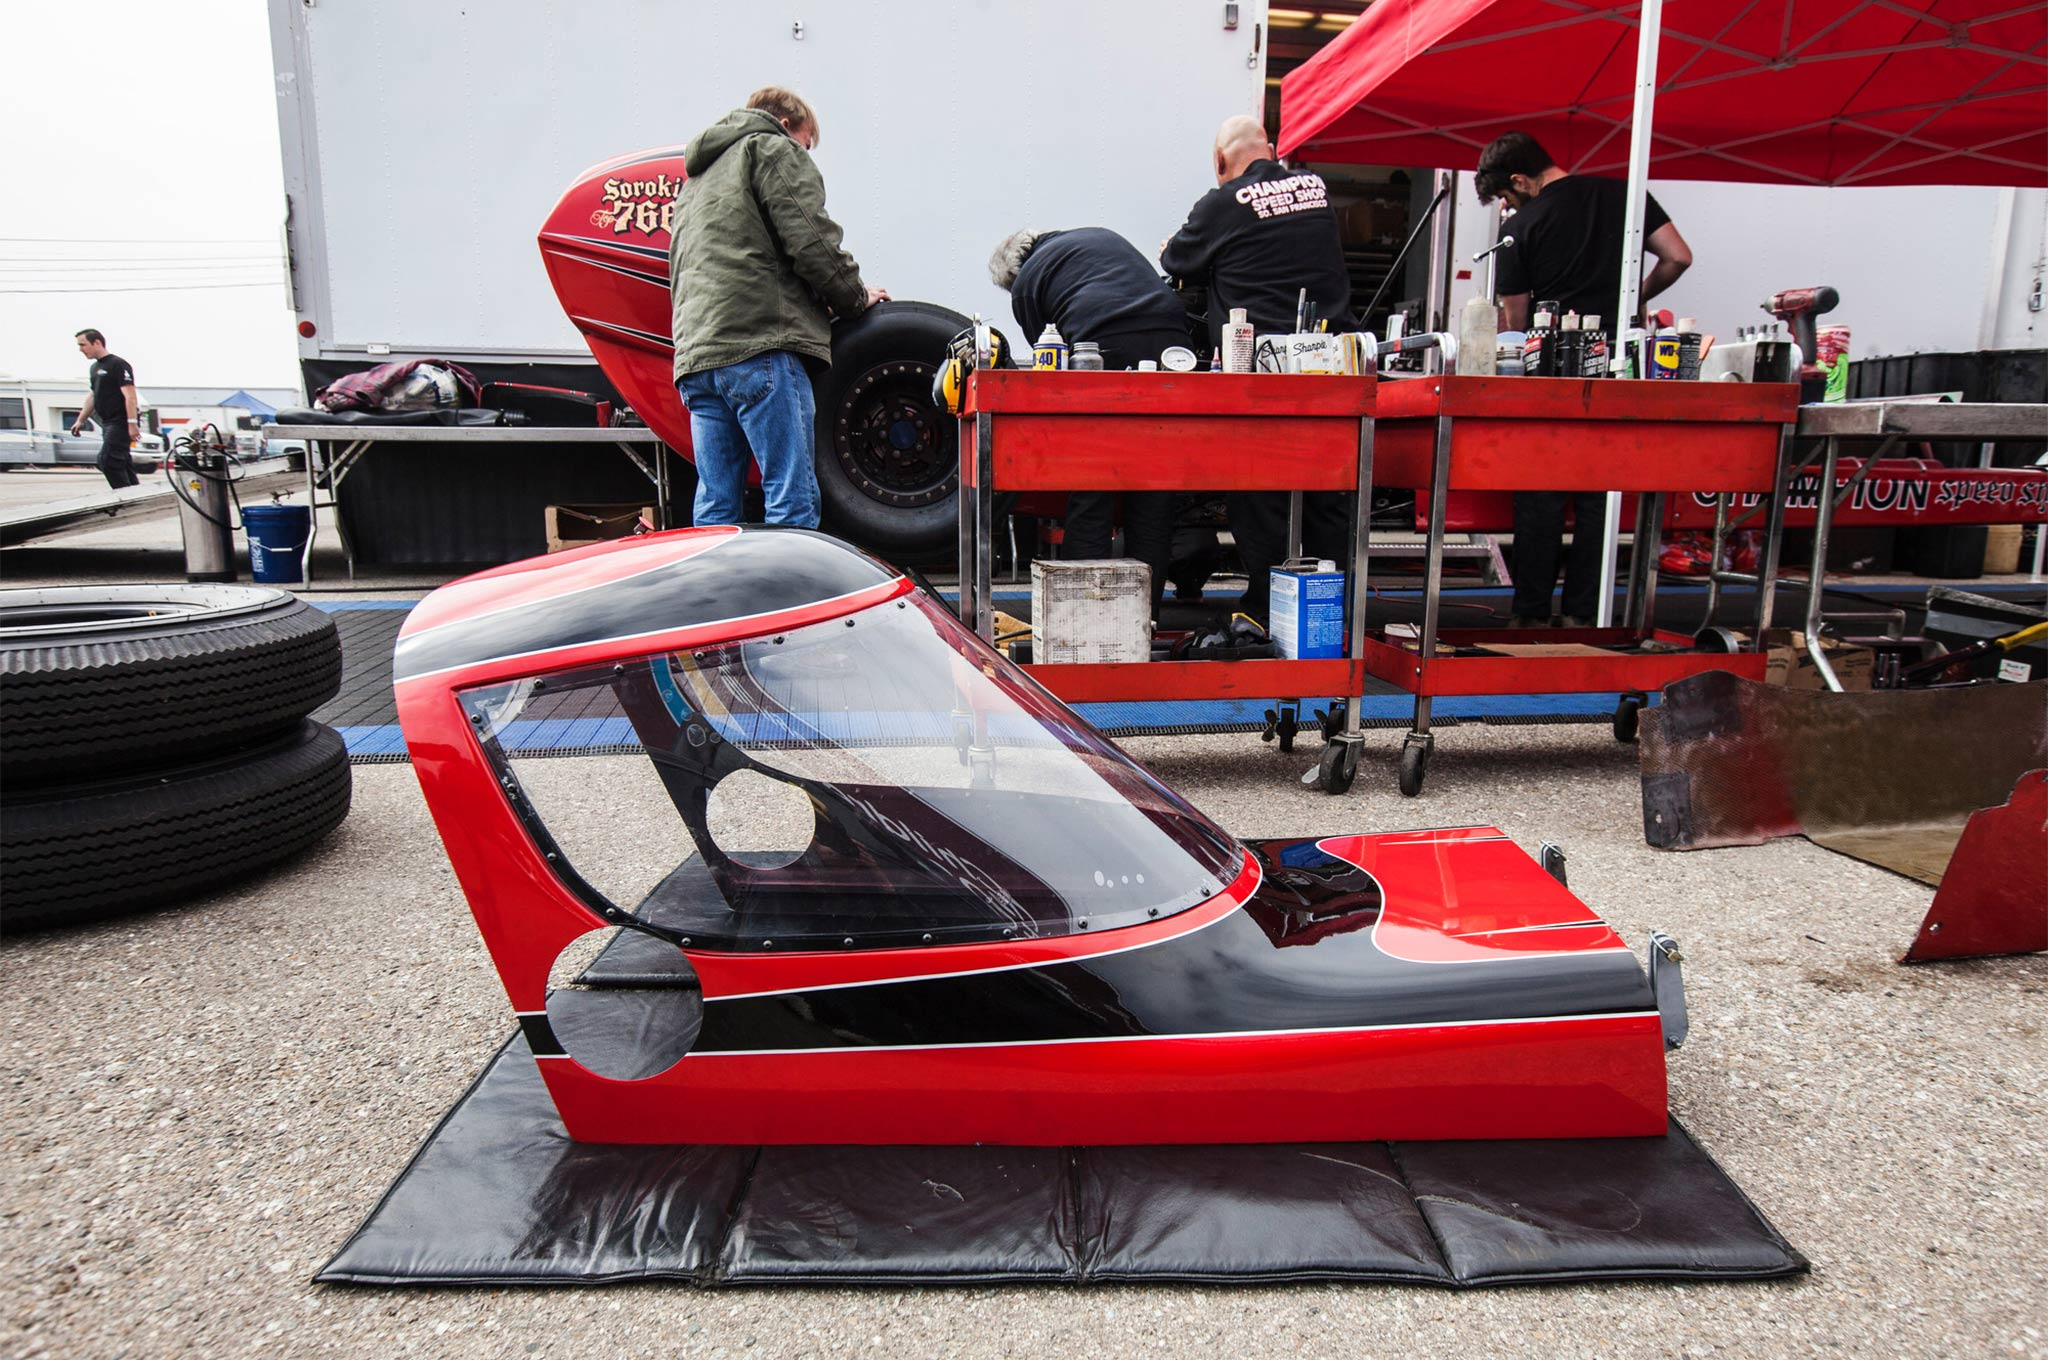 To fight the monotony of design that once relegated the dragsters to second-class status to Funny Cars, the Champion team decided to get radical with streamlining and a cockpit canopy.